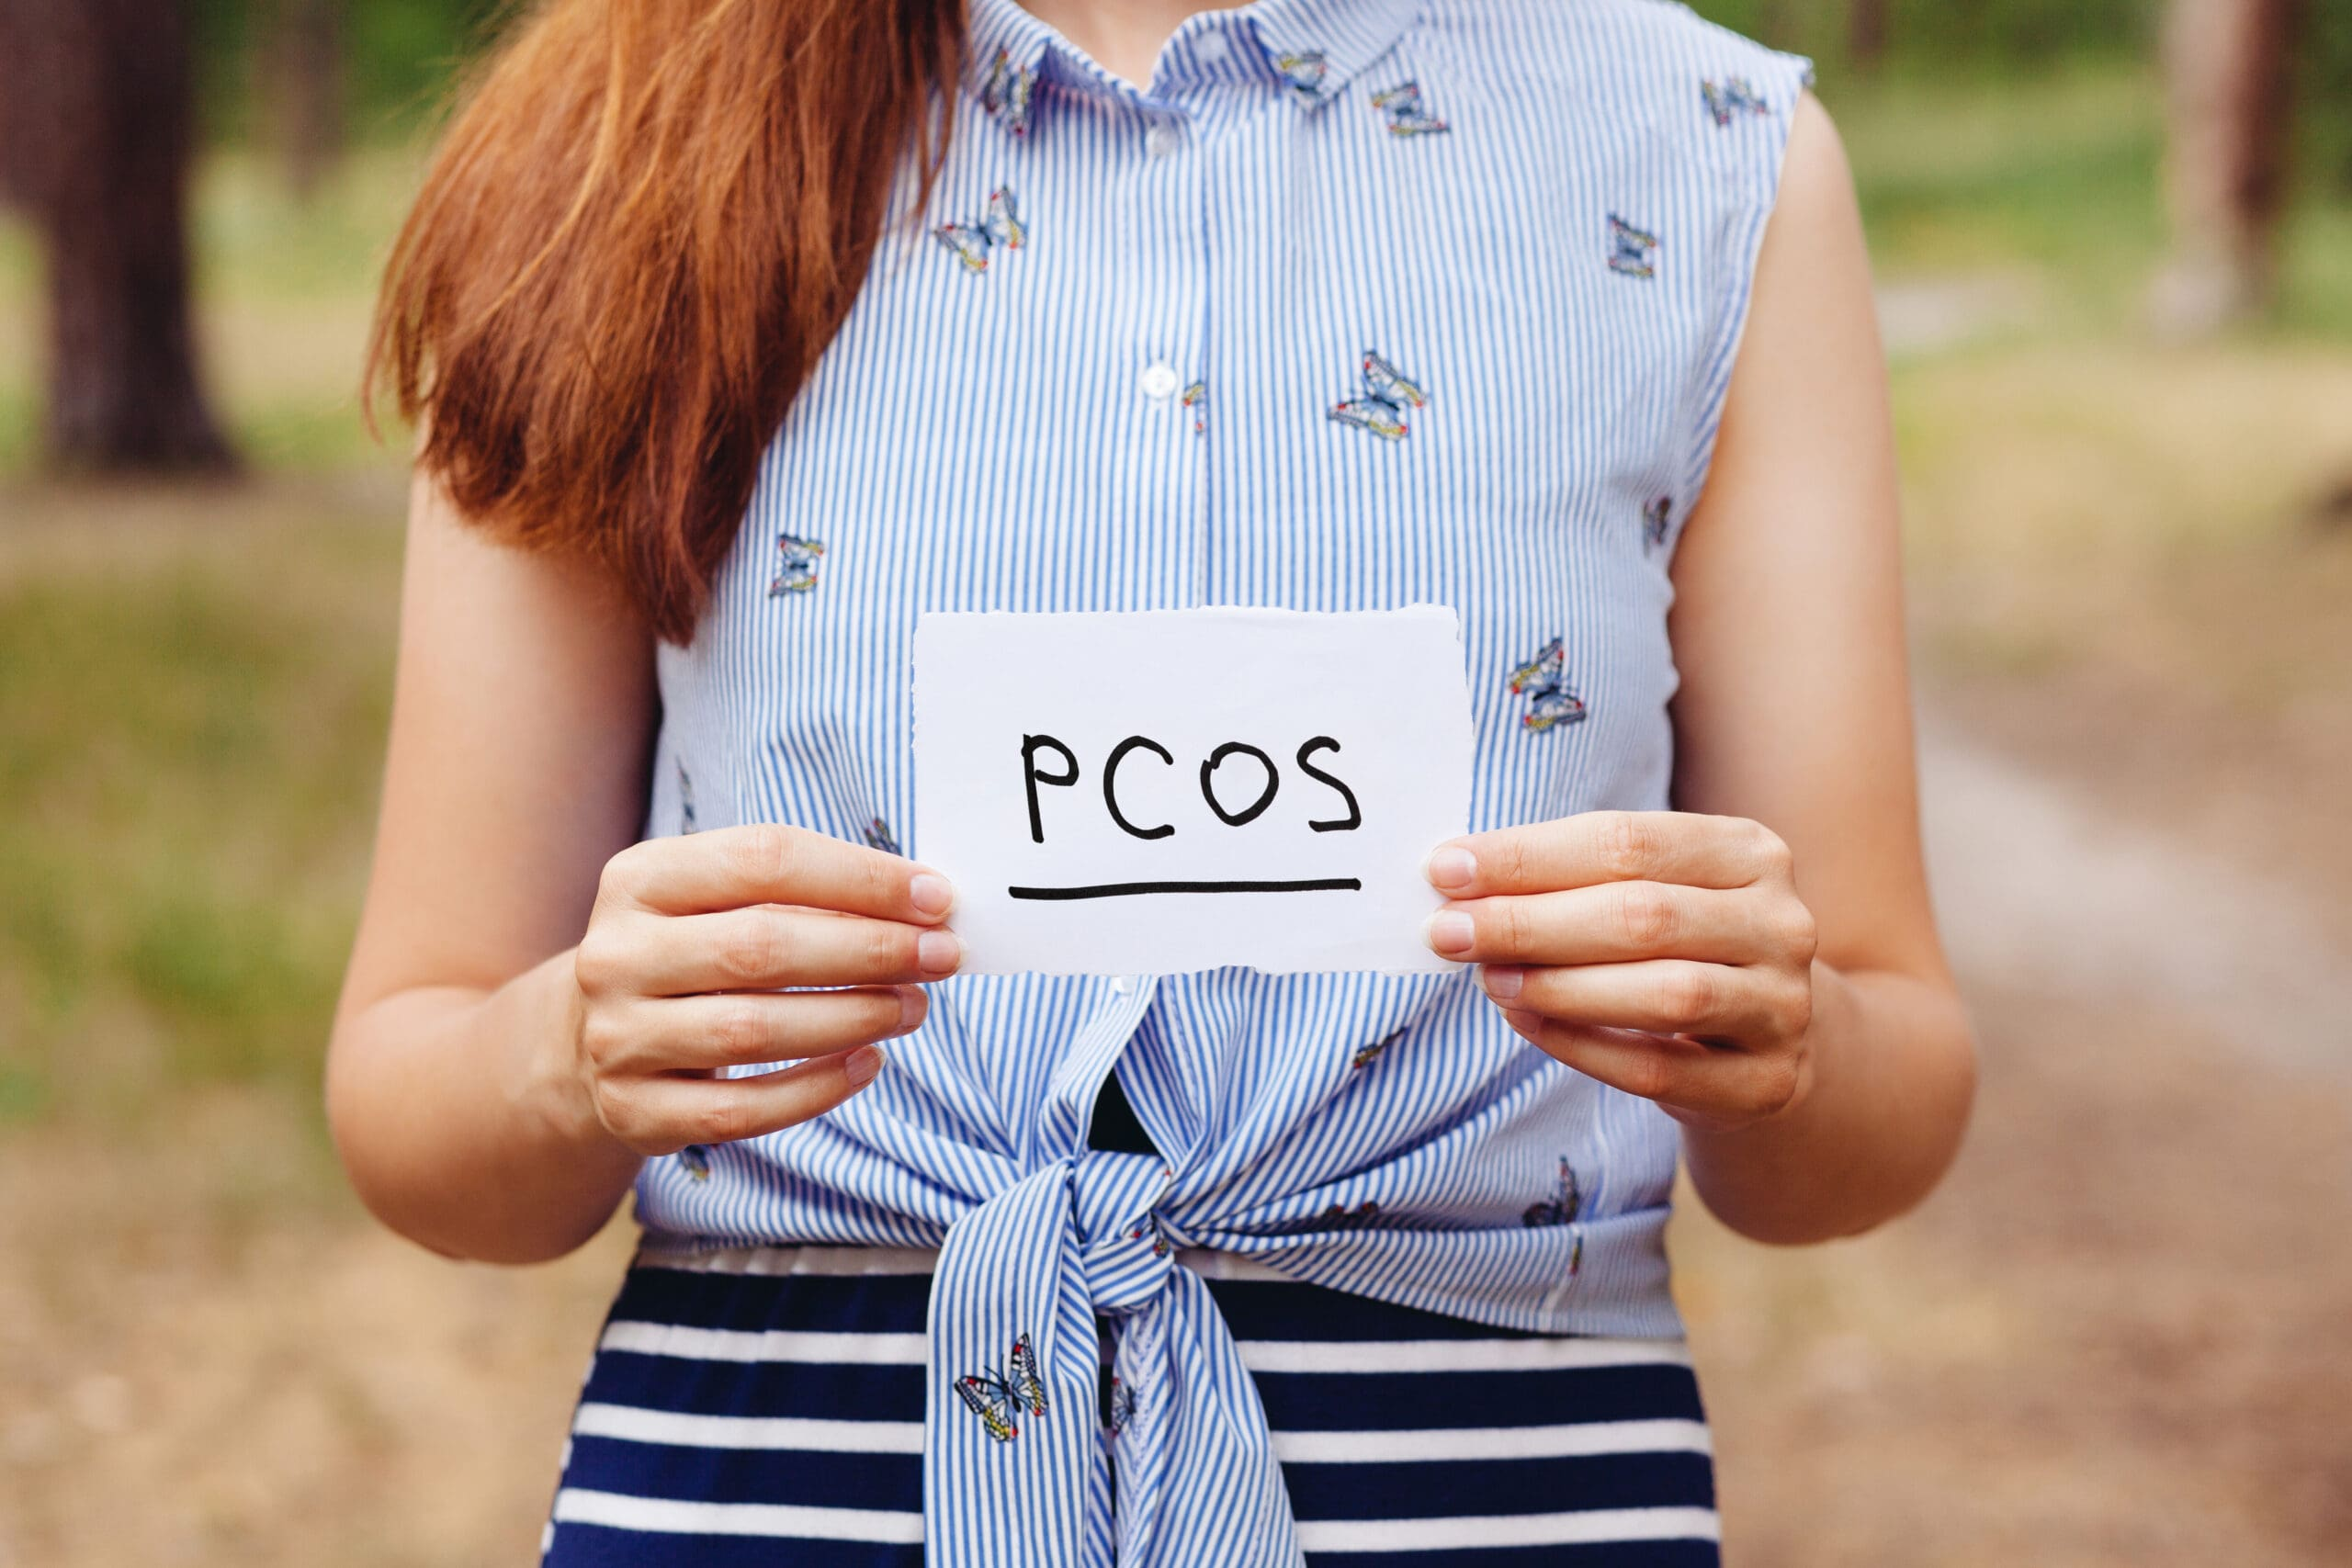 PCOS Facts and Fertility